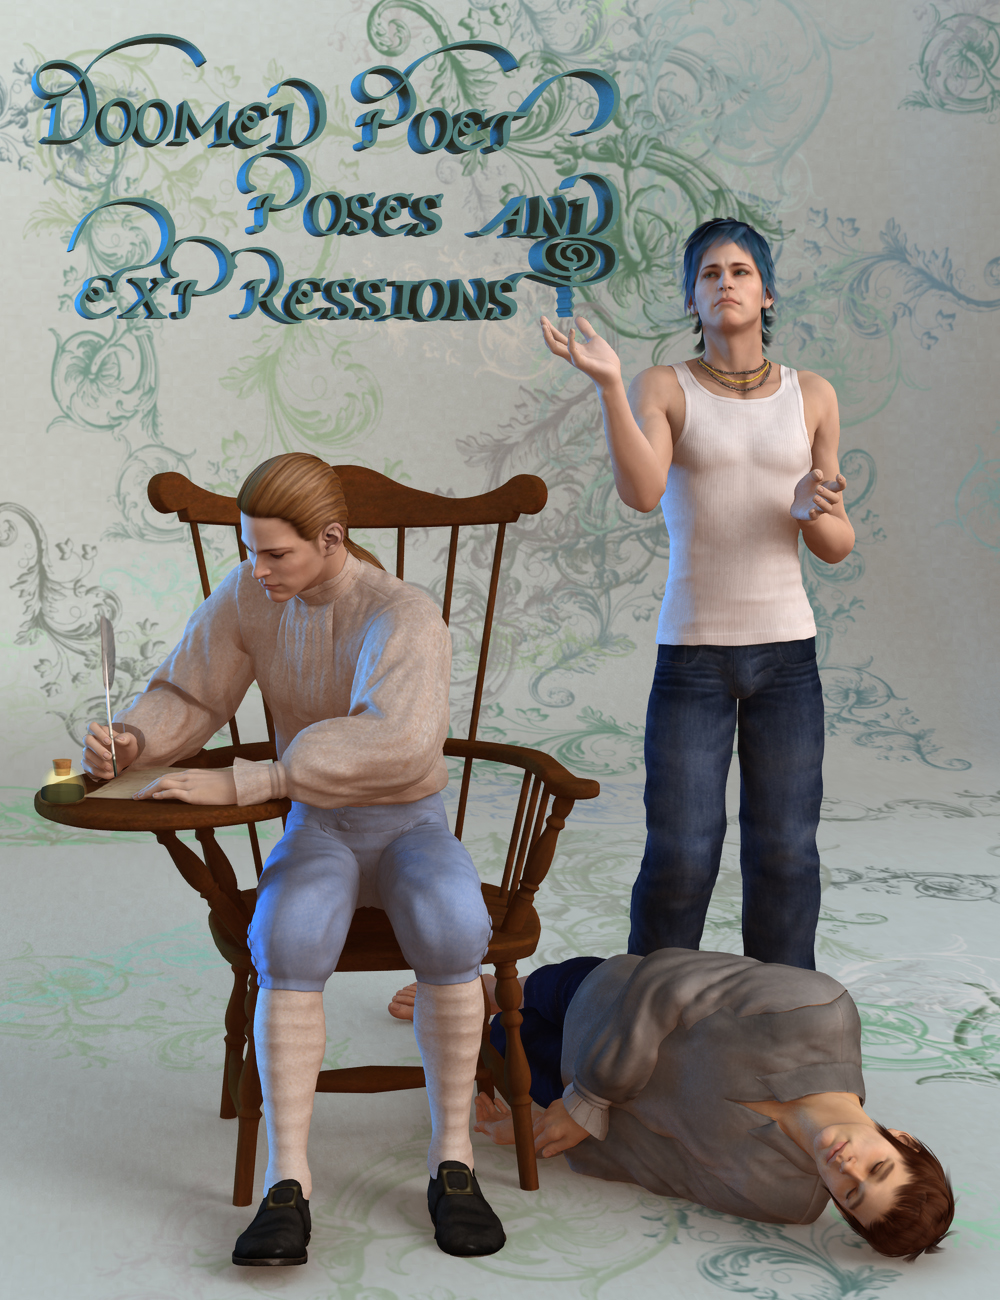 Doomed Poet Poses and Expressions by: Canary3d, 3D Models by Daz 3D